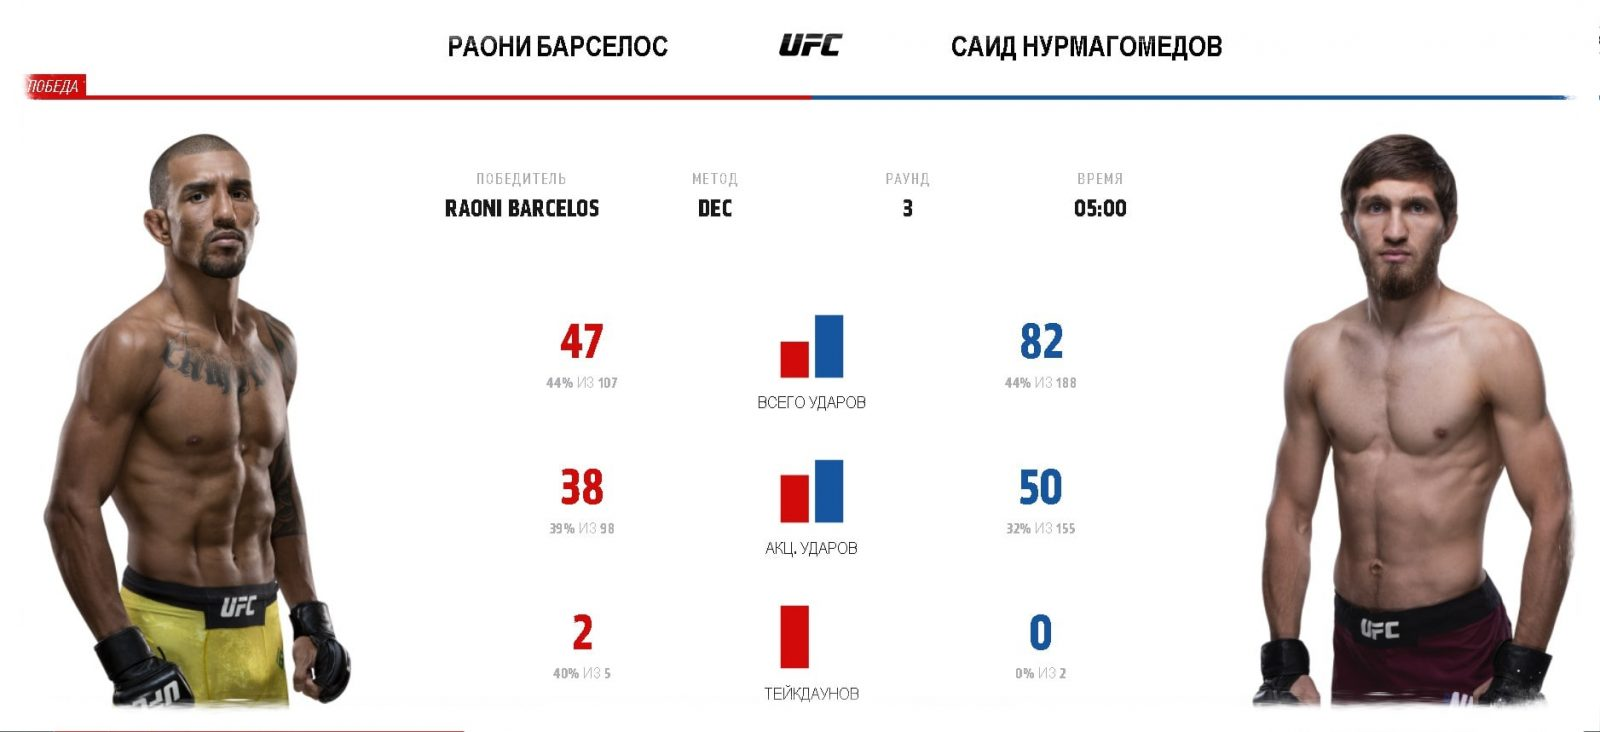 video-boya-said-nurmagomedov-raoni-barselos-said-nurmagomedov-raoni-barcelos-ufc-fight-night-165